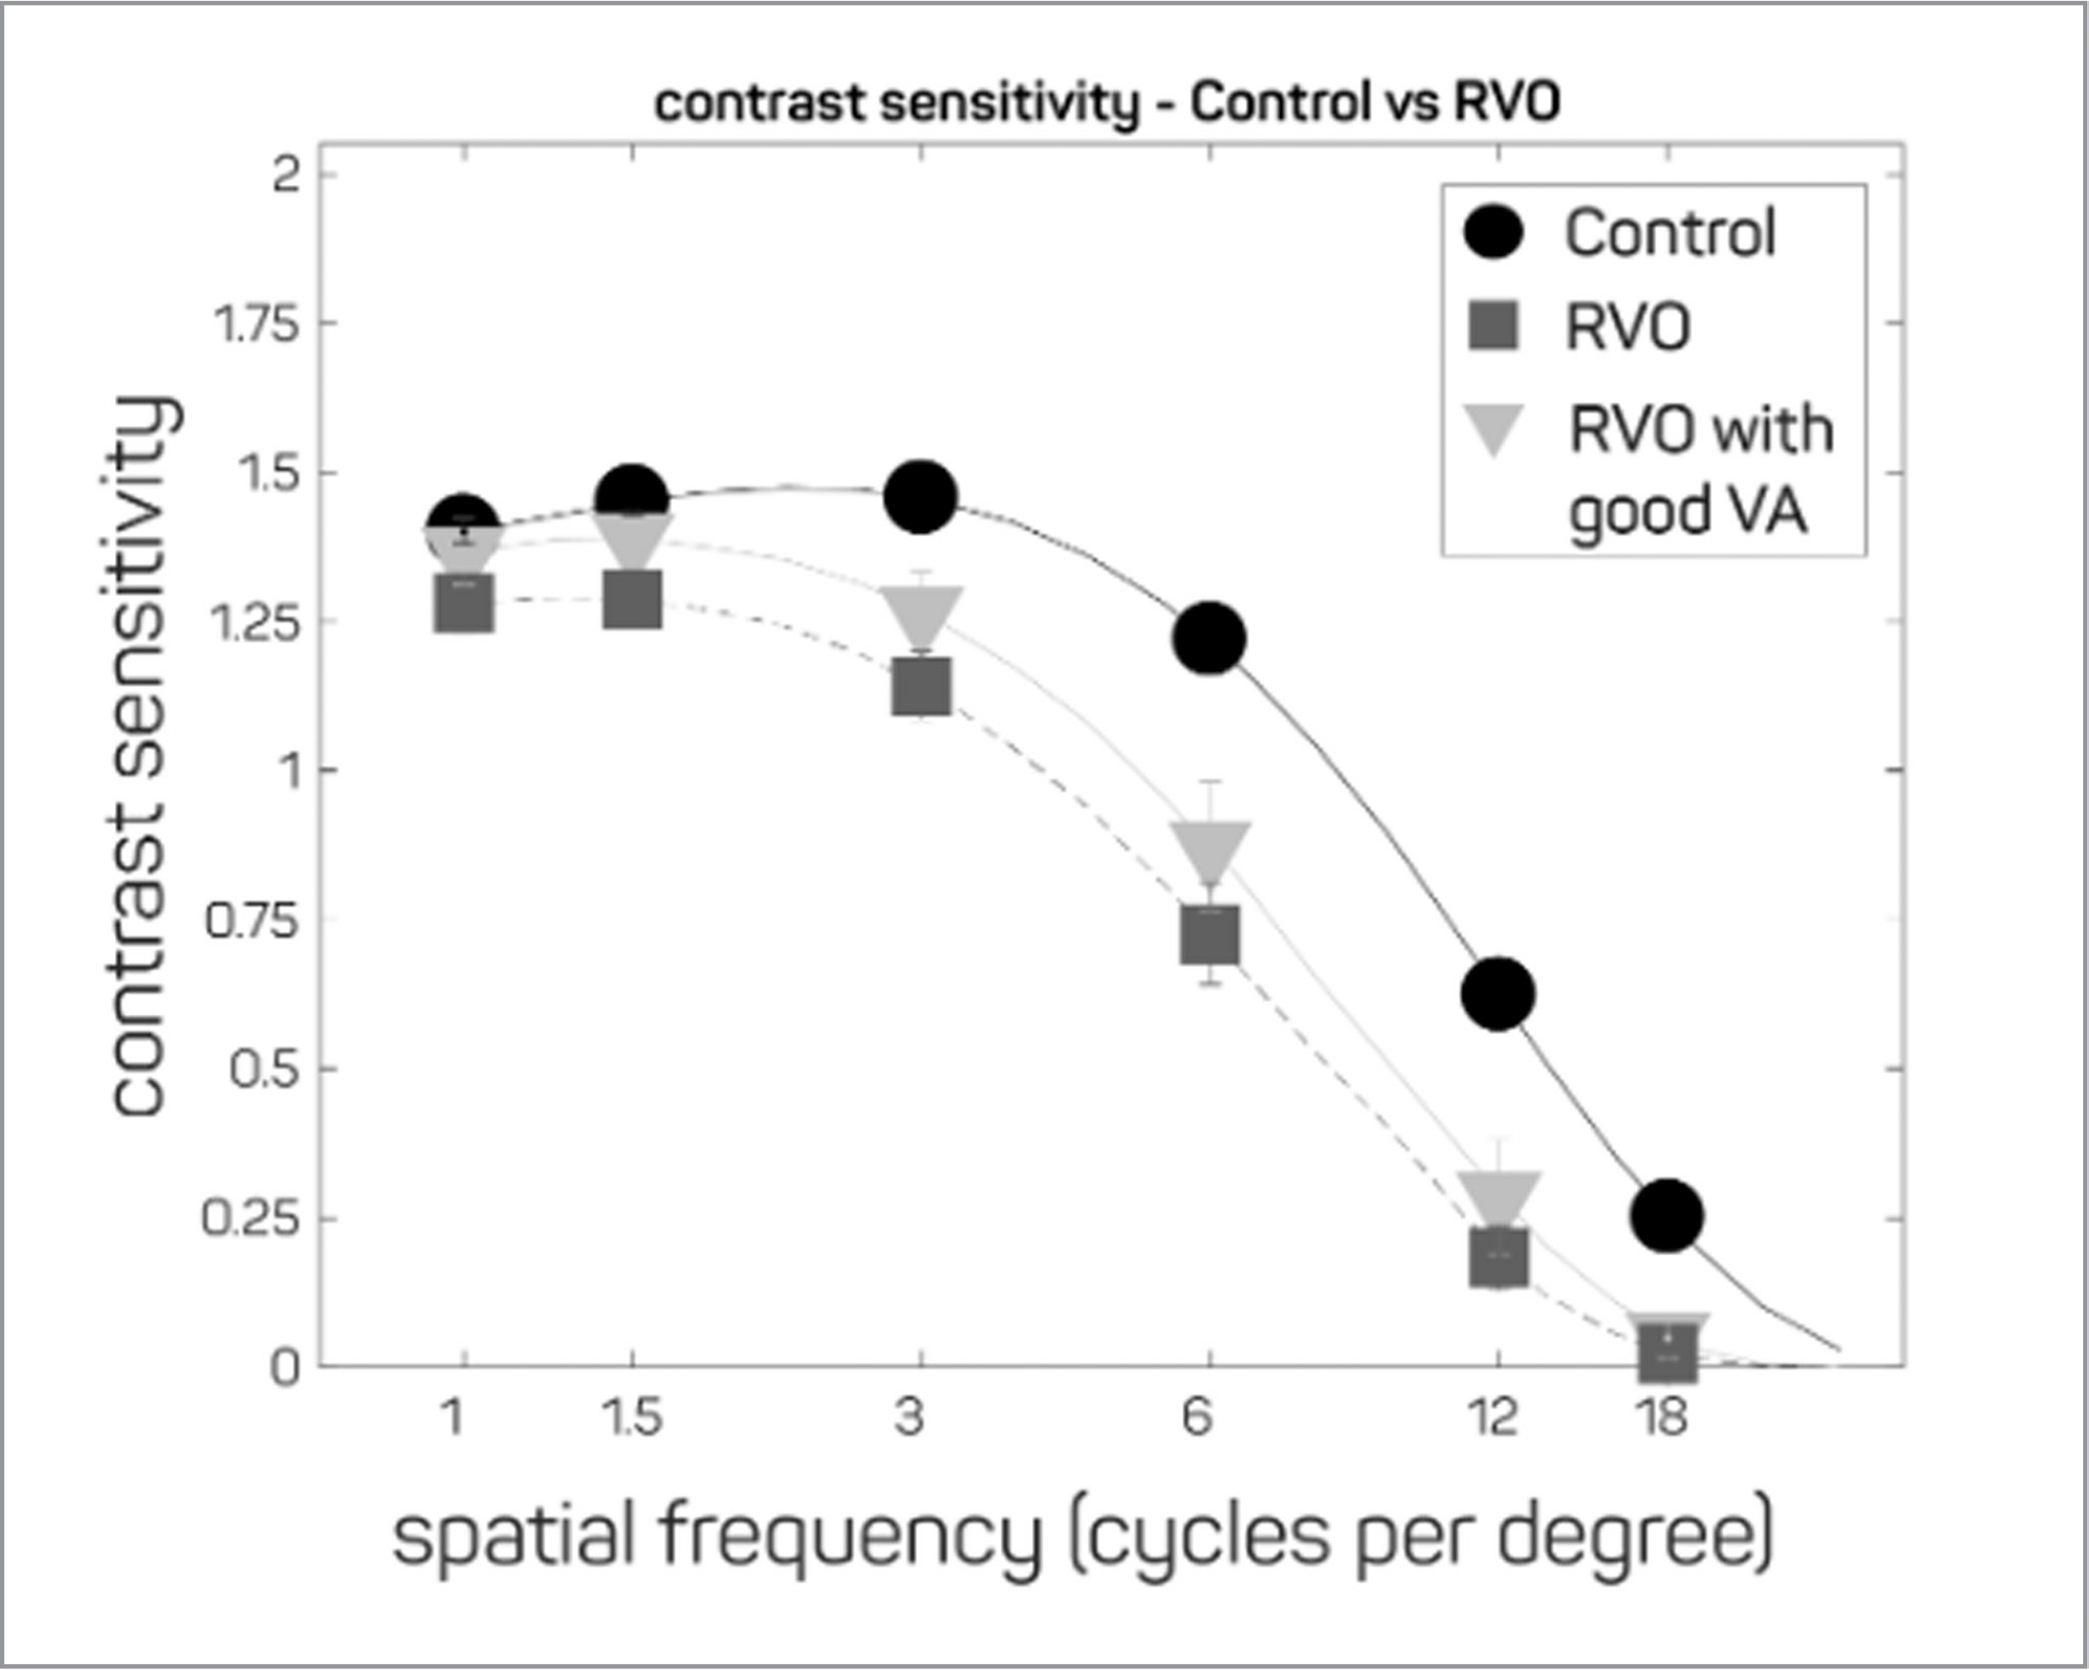 Contrast sensitivity functions (CSFs) present contrast sensitivity (reciprocal of log contrast threshold) as a function of spatial frequency (optotype size). Average CSFs are presented for eyes with retinal vein occlusion (RVO) (square), eyes with RVO and good visual acuity (VA) (triangles), or eyes from age-matched controls (circle).